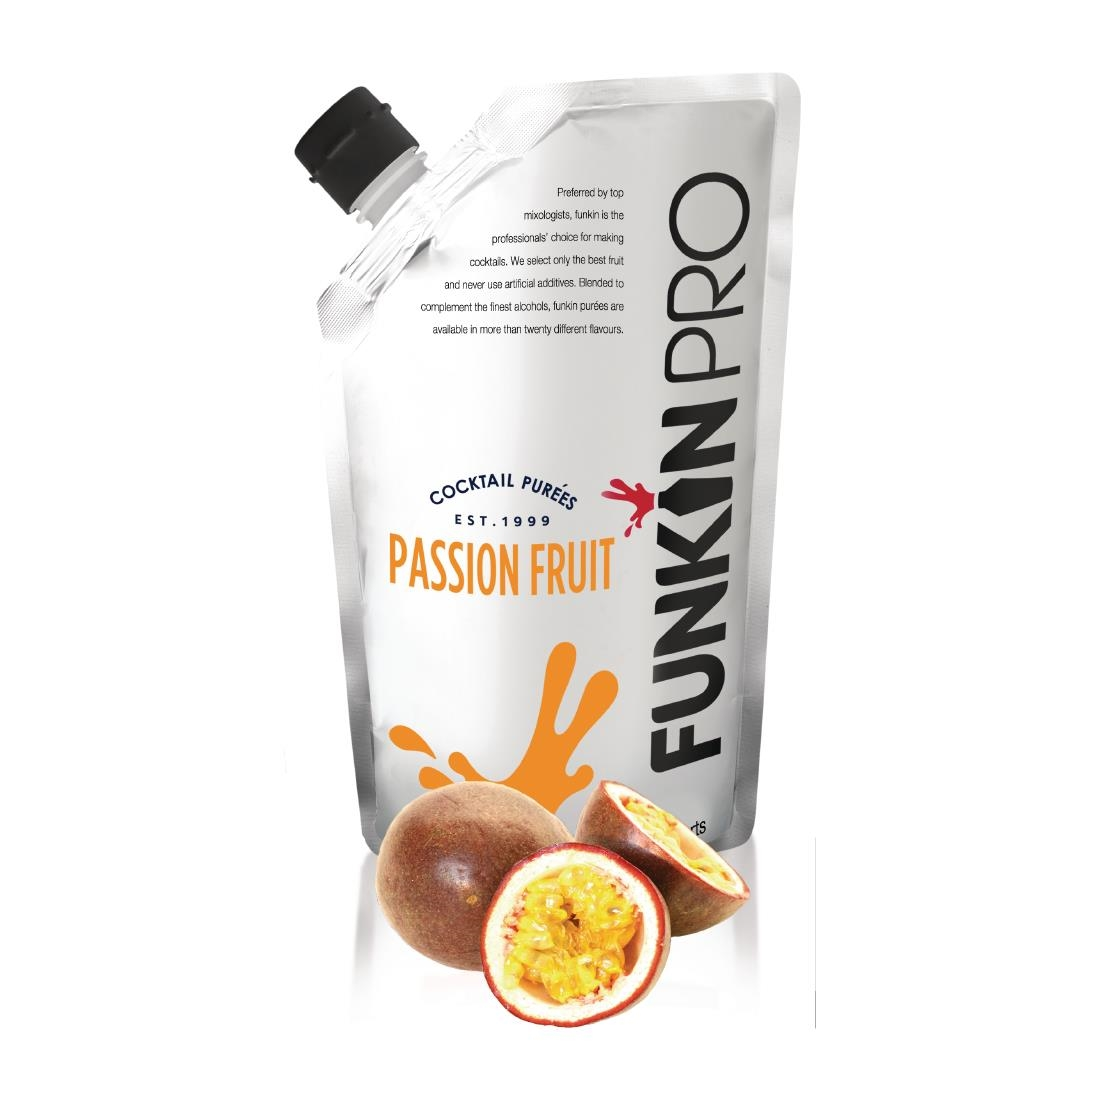 Image of Funkin Puree Passion Fruit